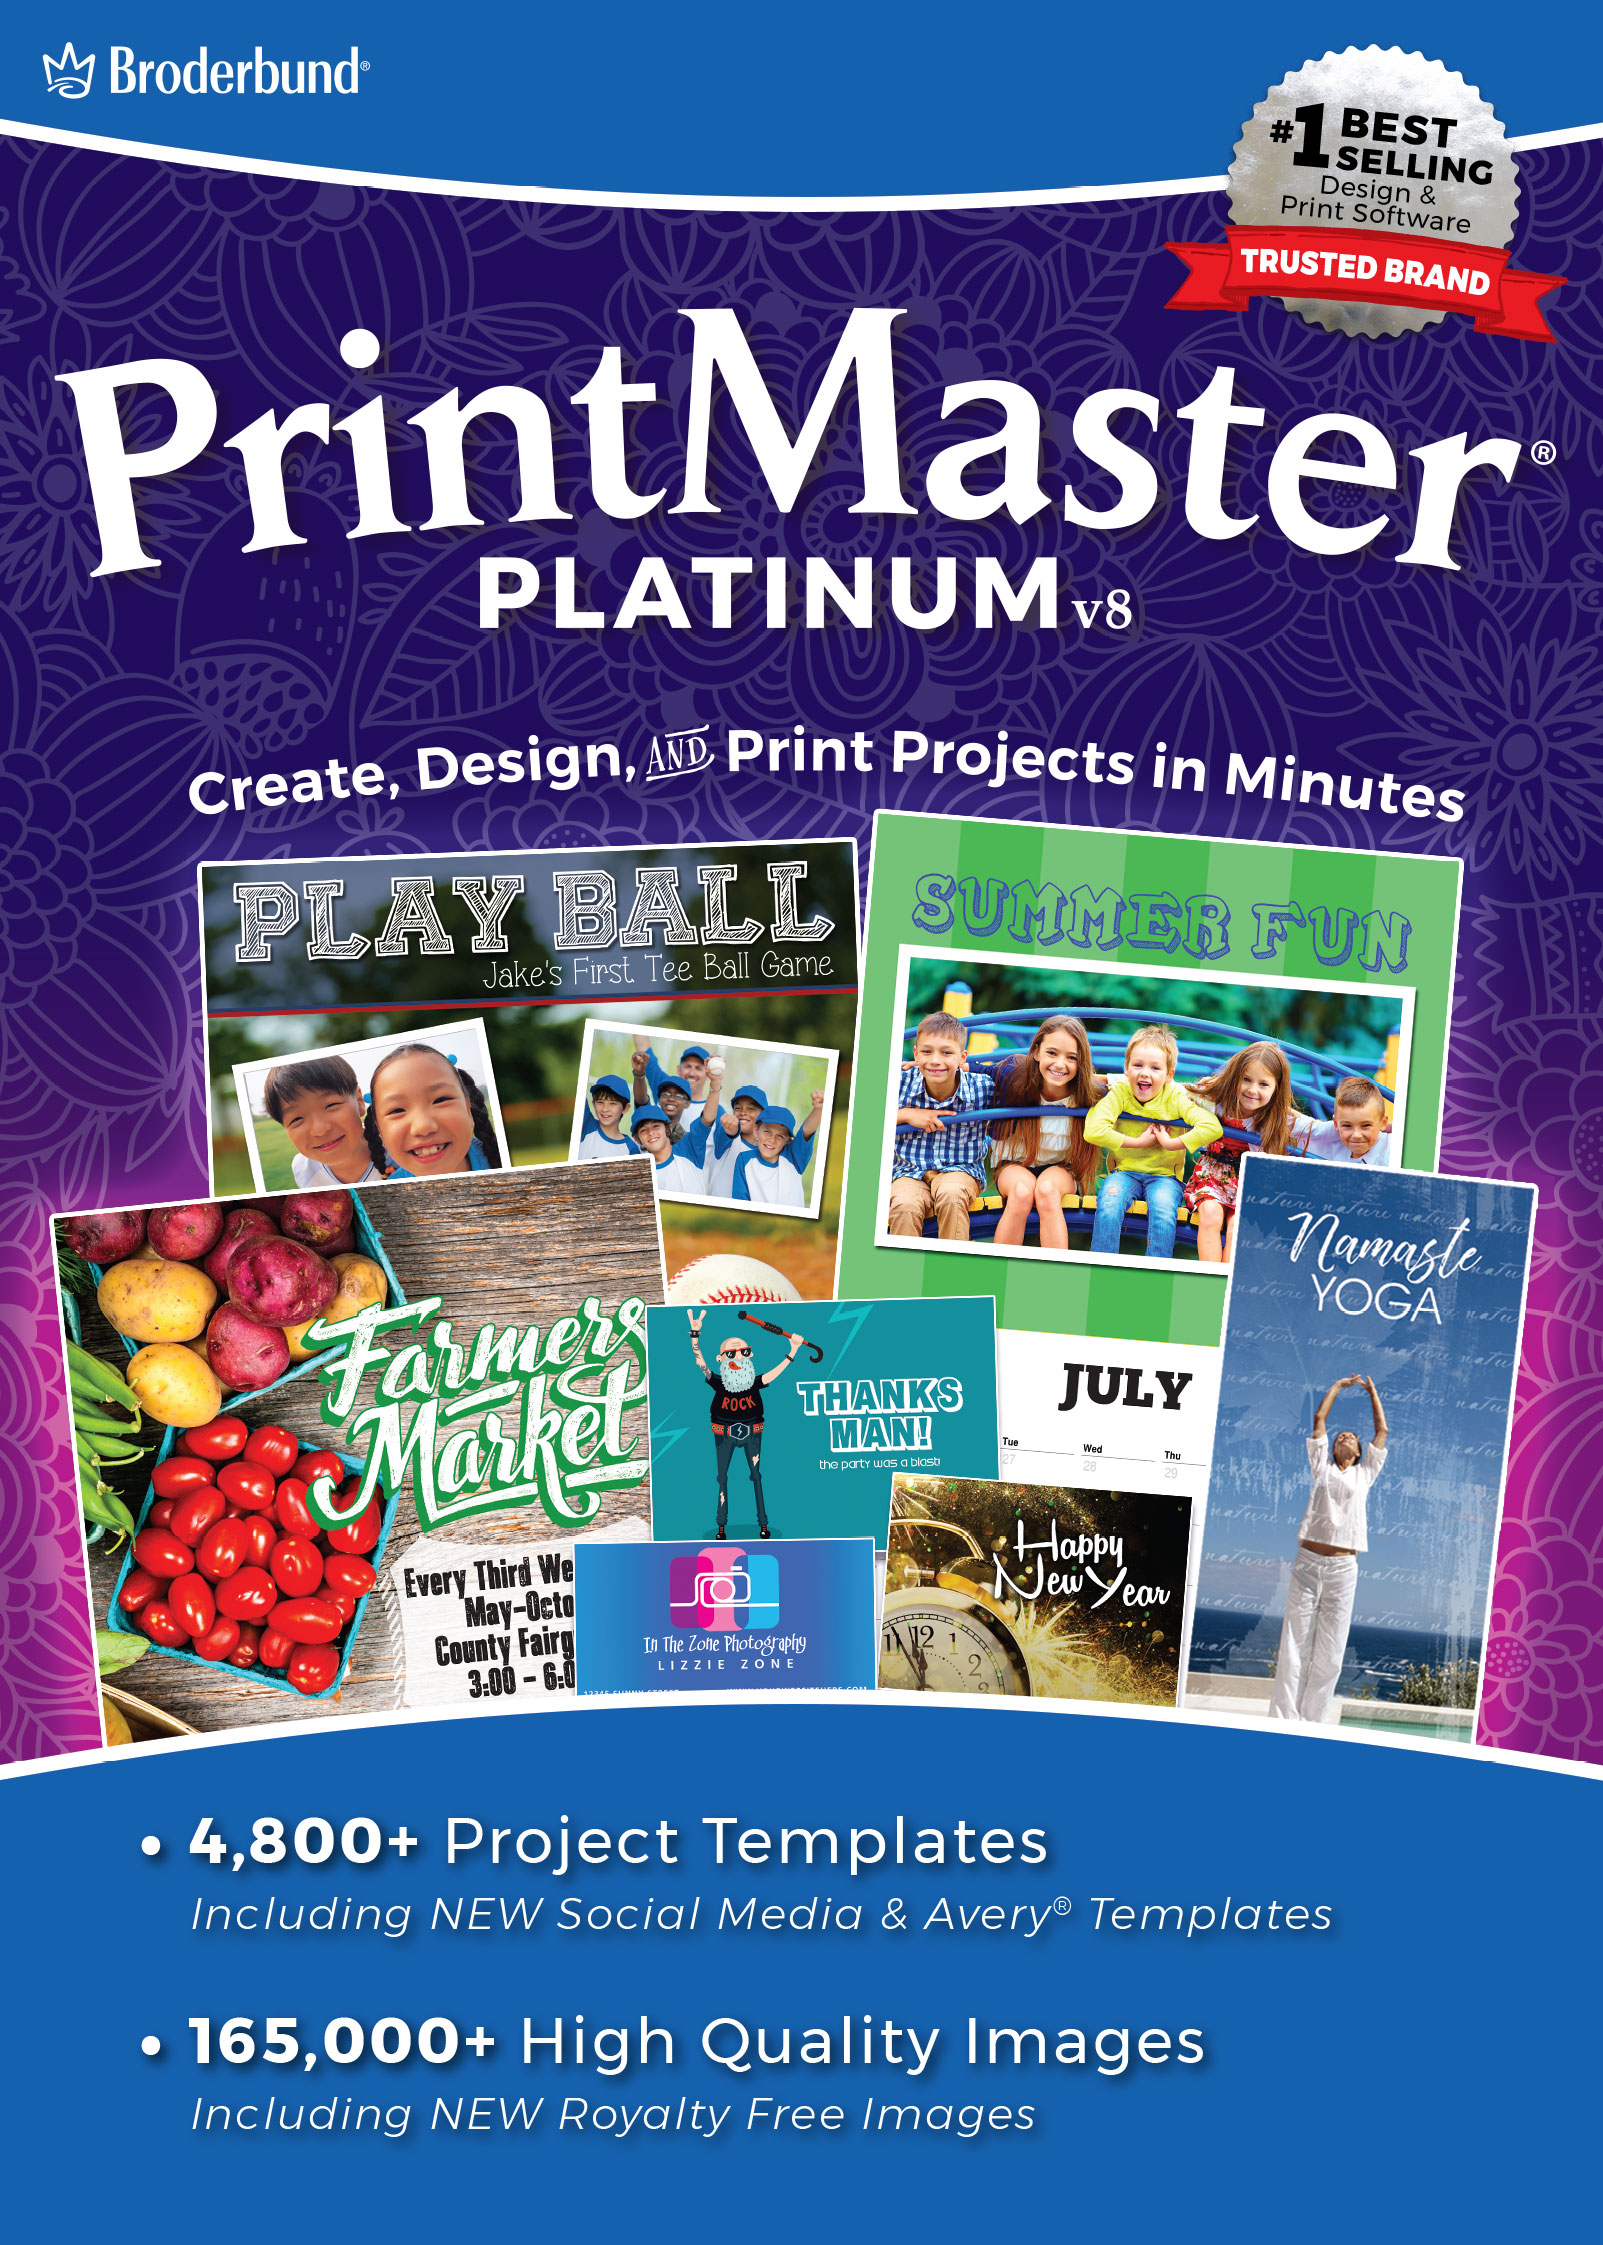 PrintMaster v8 Platinum for PC– Design Software for At Home Print Projects [Download] (Home Publishing Software)